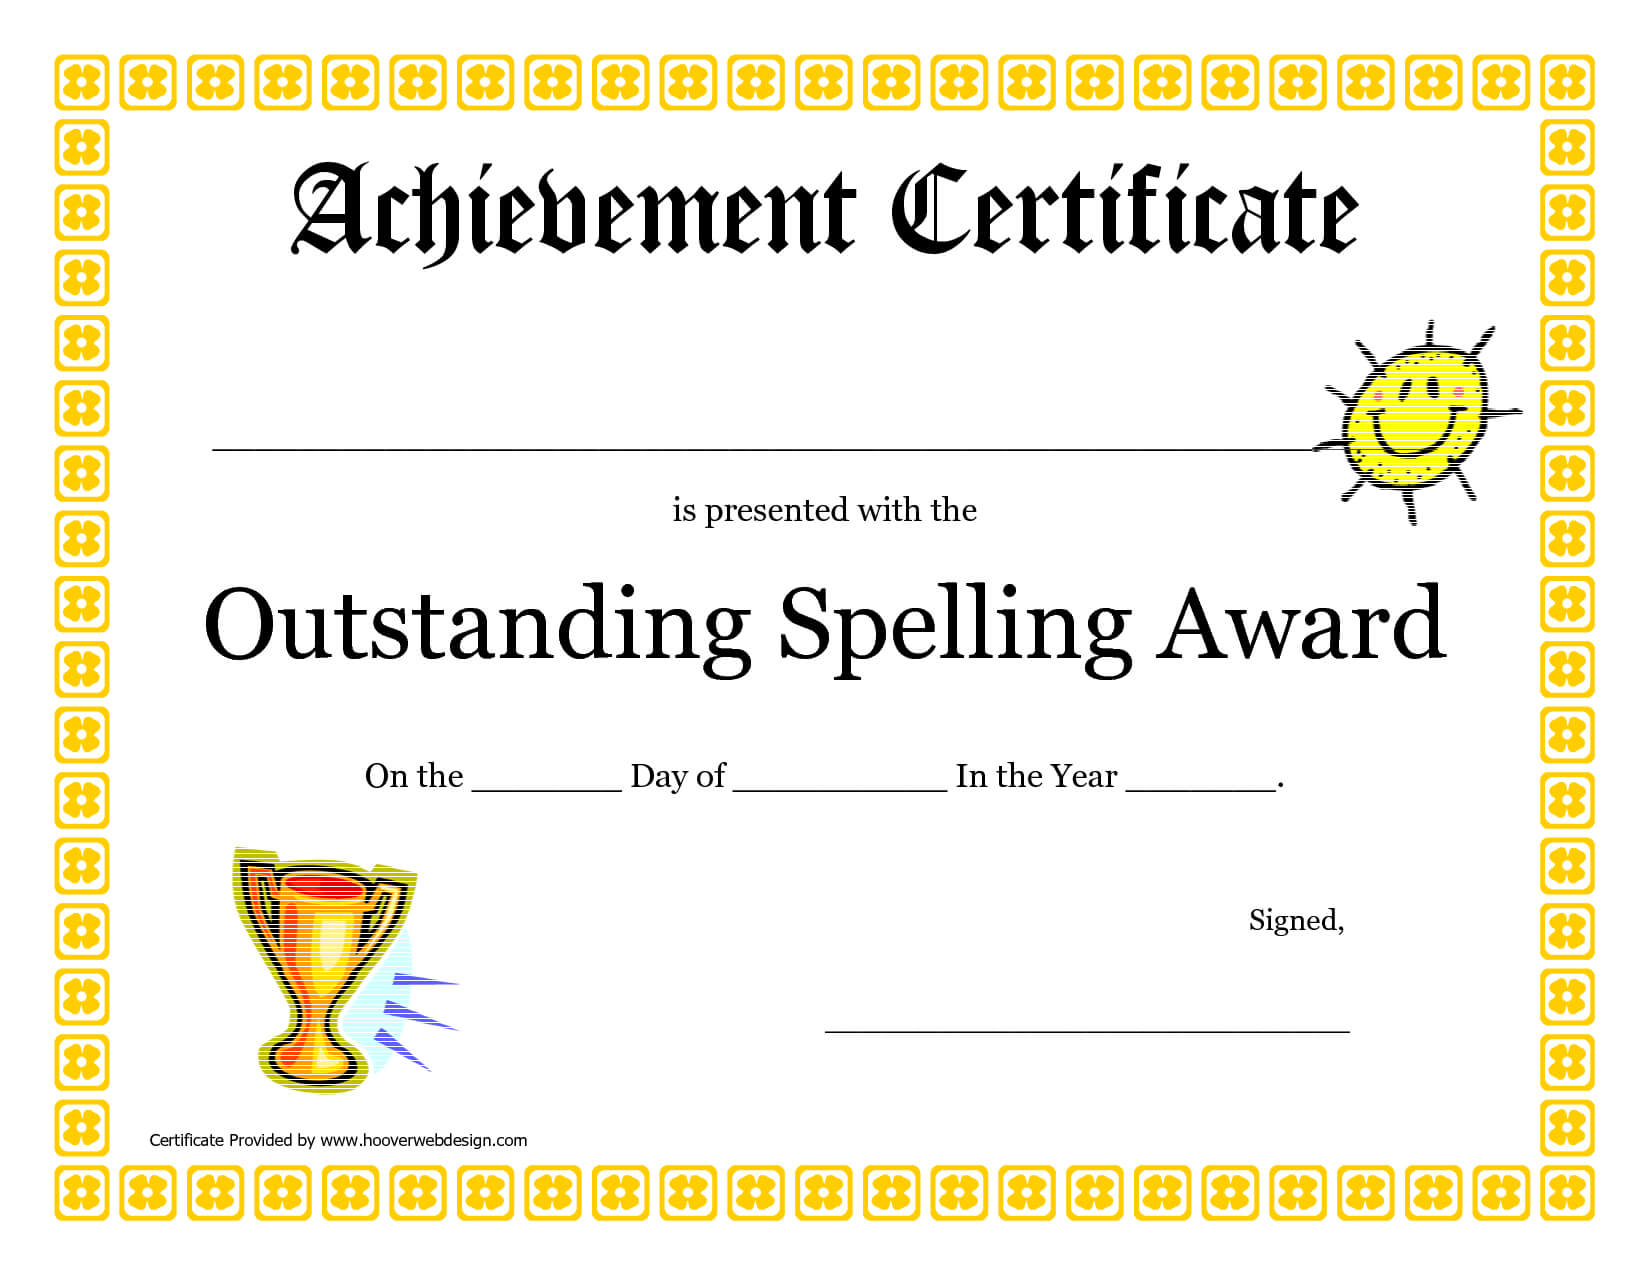 Outstanding Spelling Award Printable Certificate Pdf Picture Within Spelling Bee Award Certificate Template